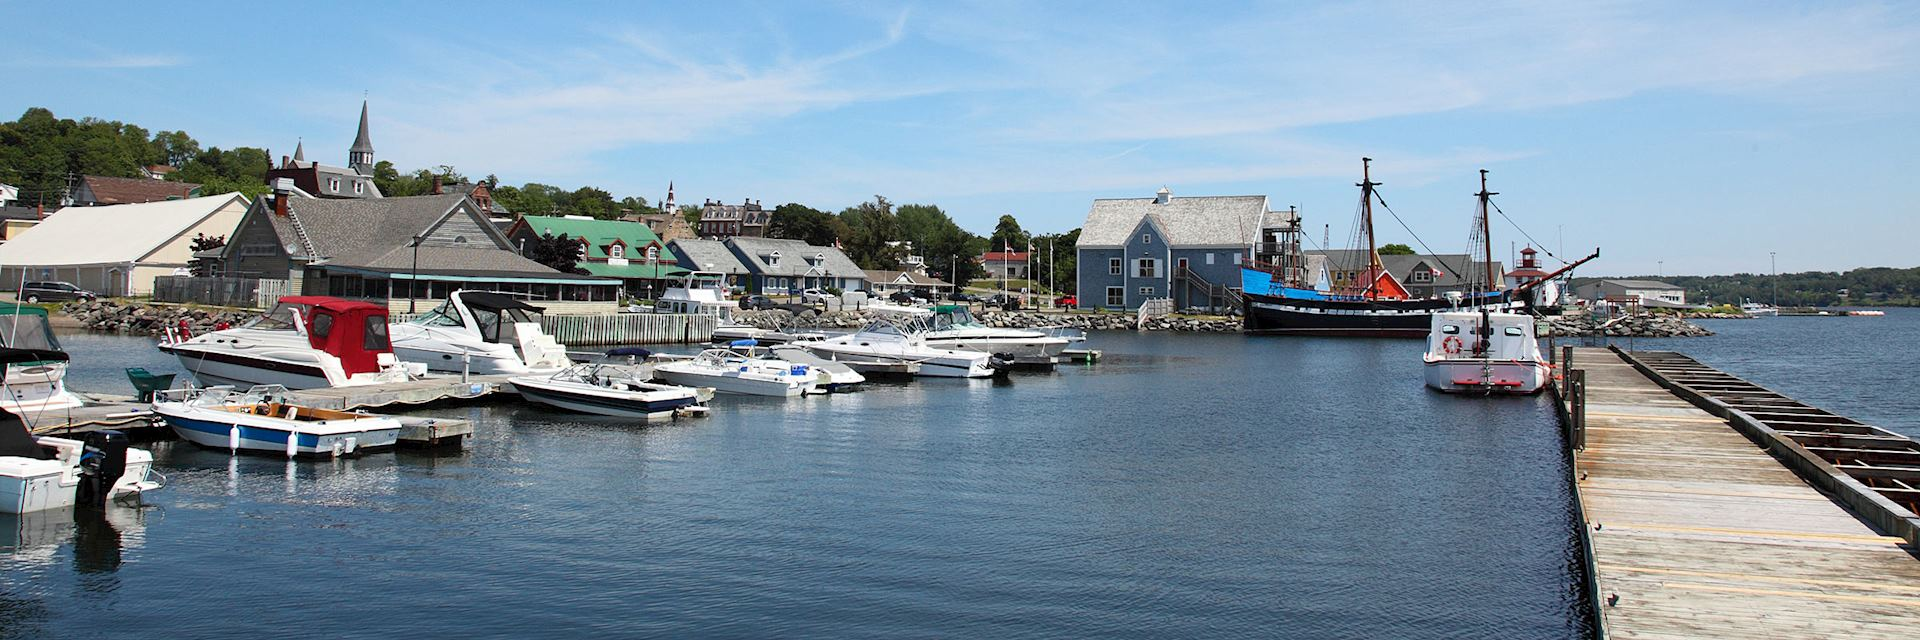 Pictou harbour